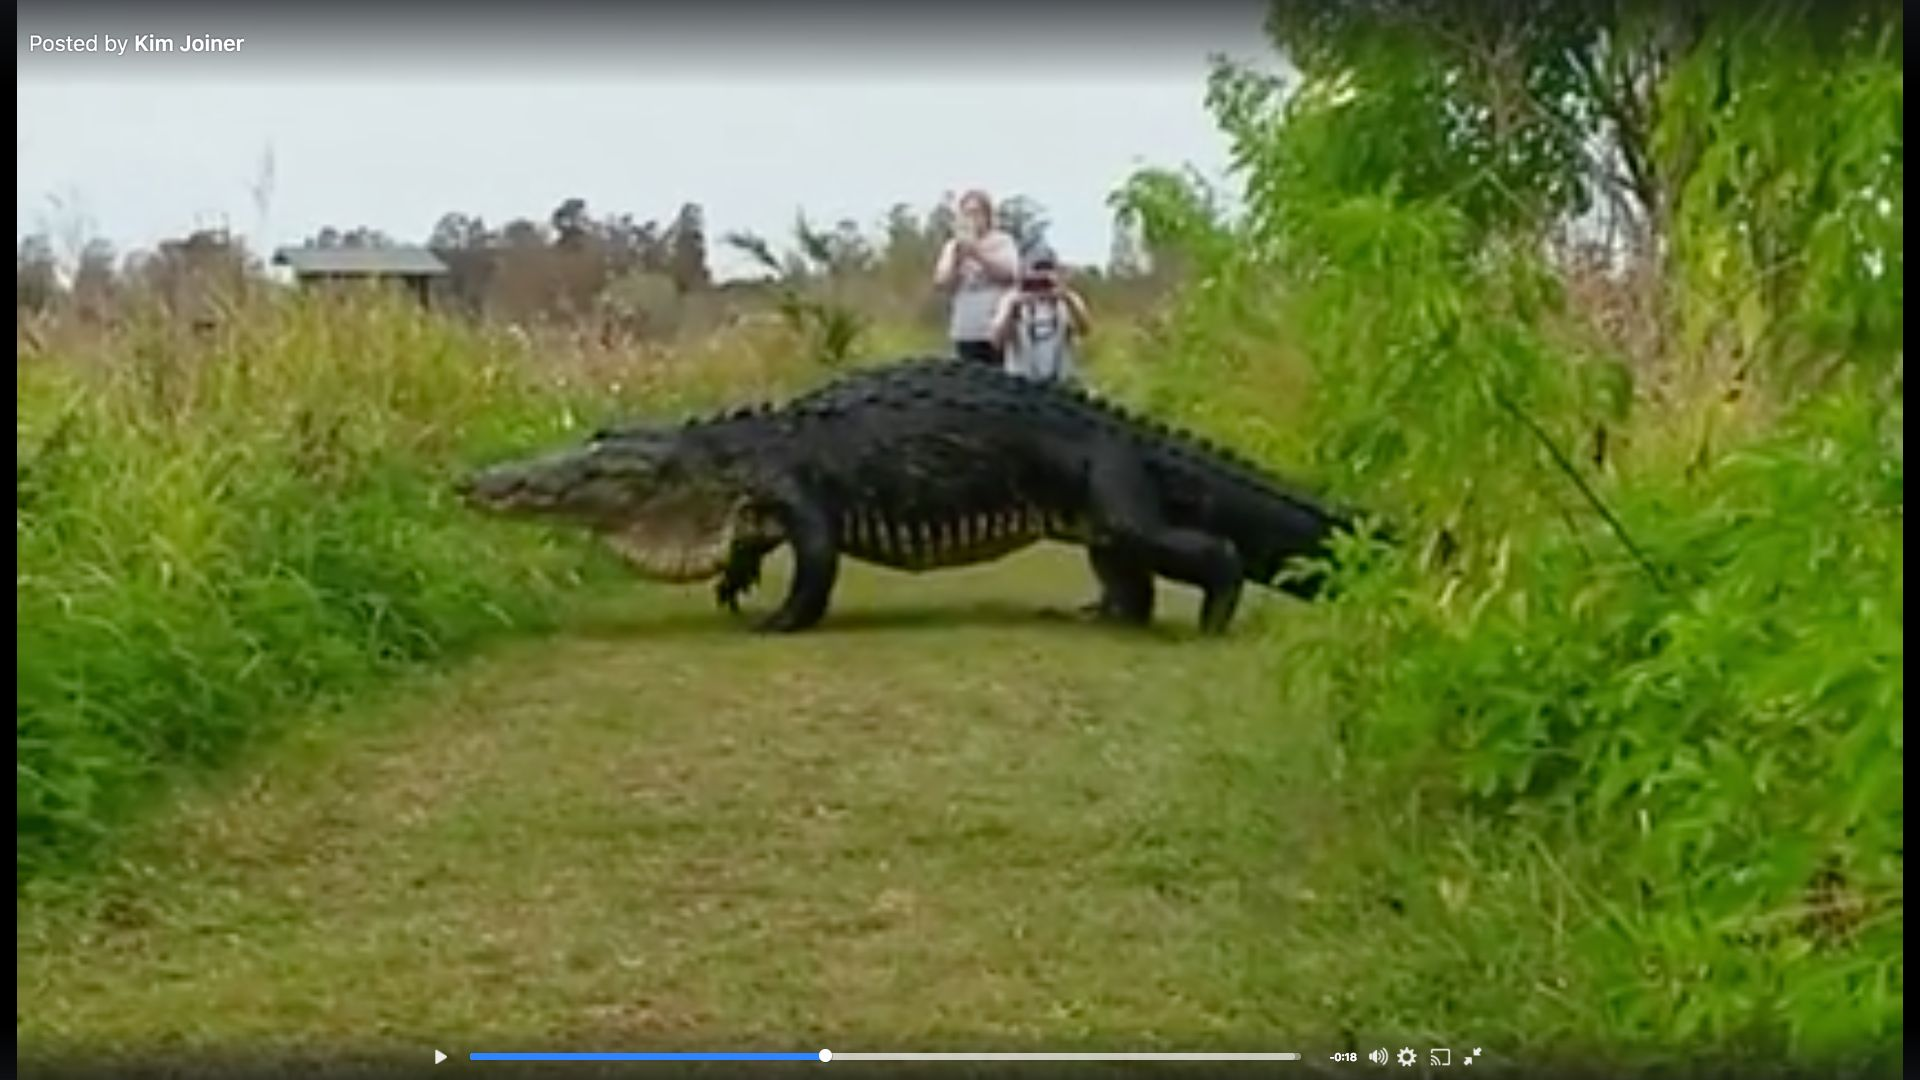 People in Florida got an unexpected treat when this massive alligator crossed their path.